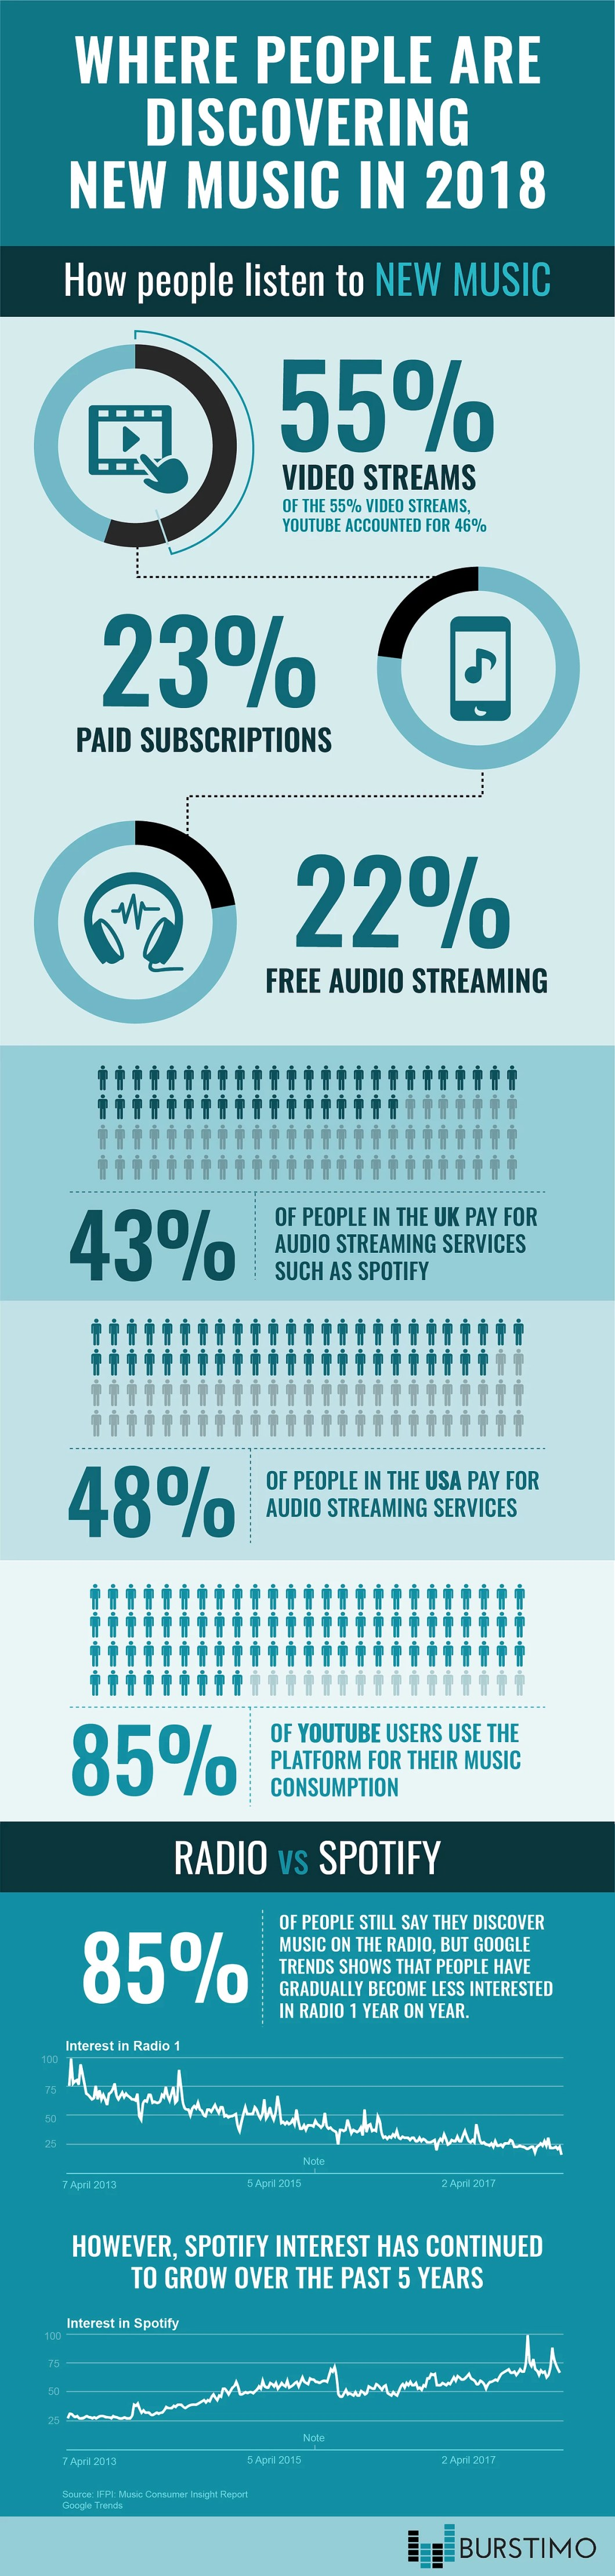 Is Radio Being Replaced: New Trends in 2018 - Infographic